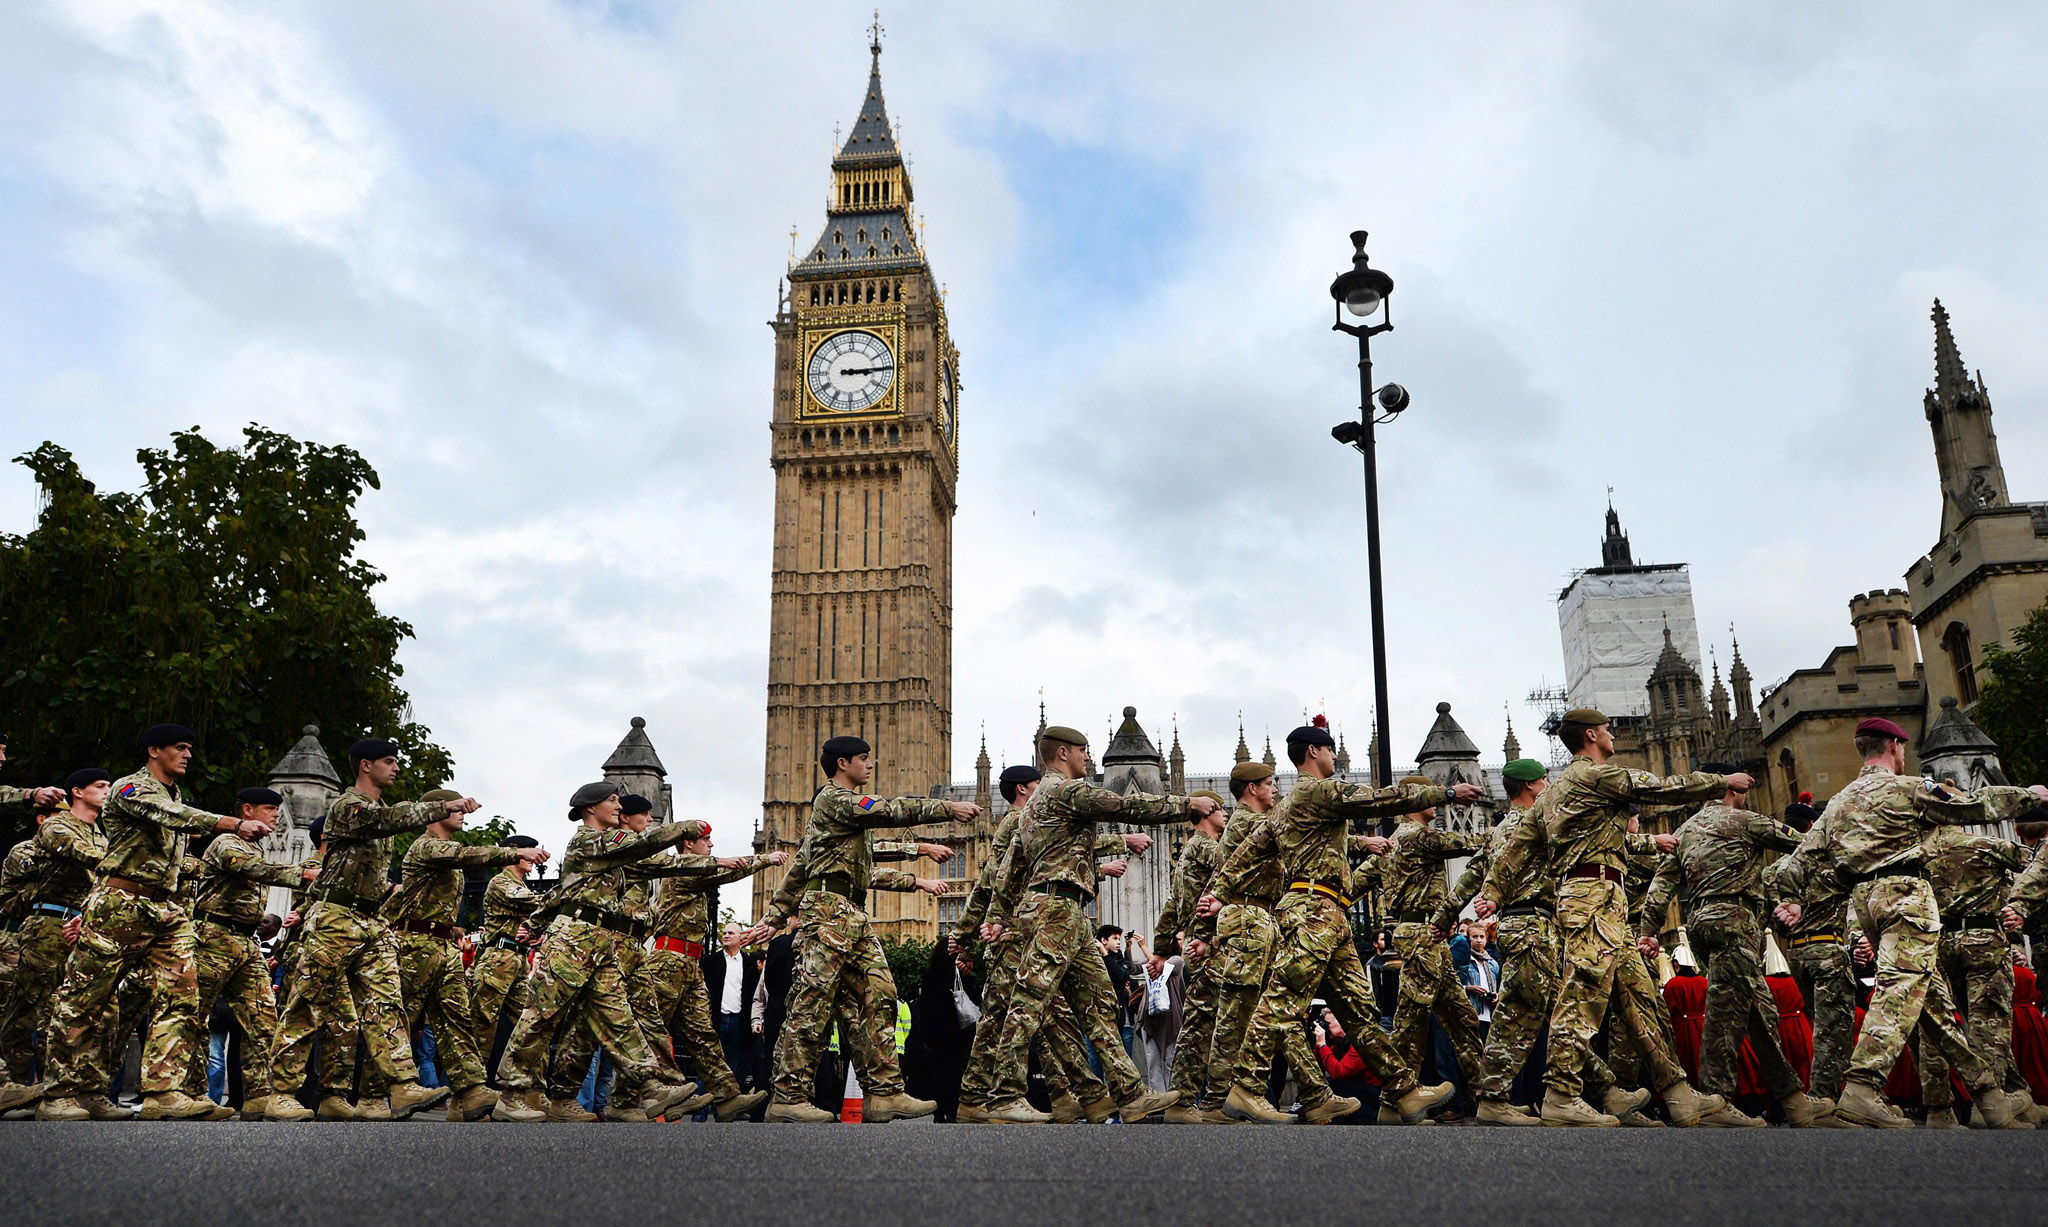 Members of 1 Mechanized Brigade march into Westminster Palace in London, Britain.The one hundred and twenty strong brigade from Tidworth who recently returned from Helmund Province in Afghanistan attended a Parliamentary reception.